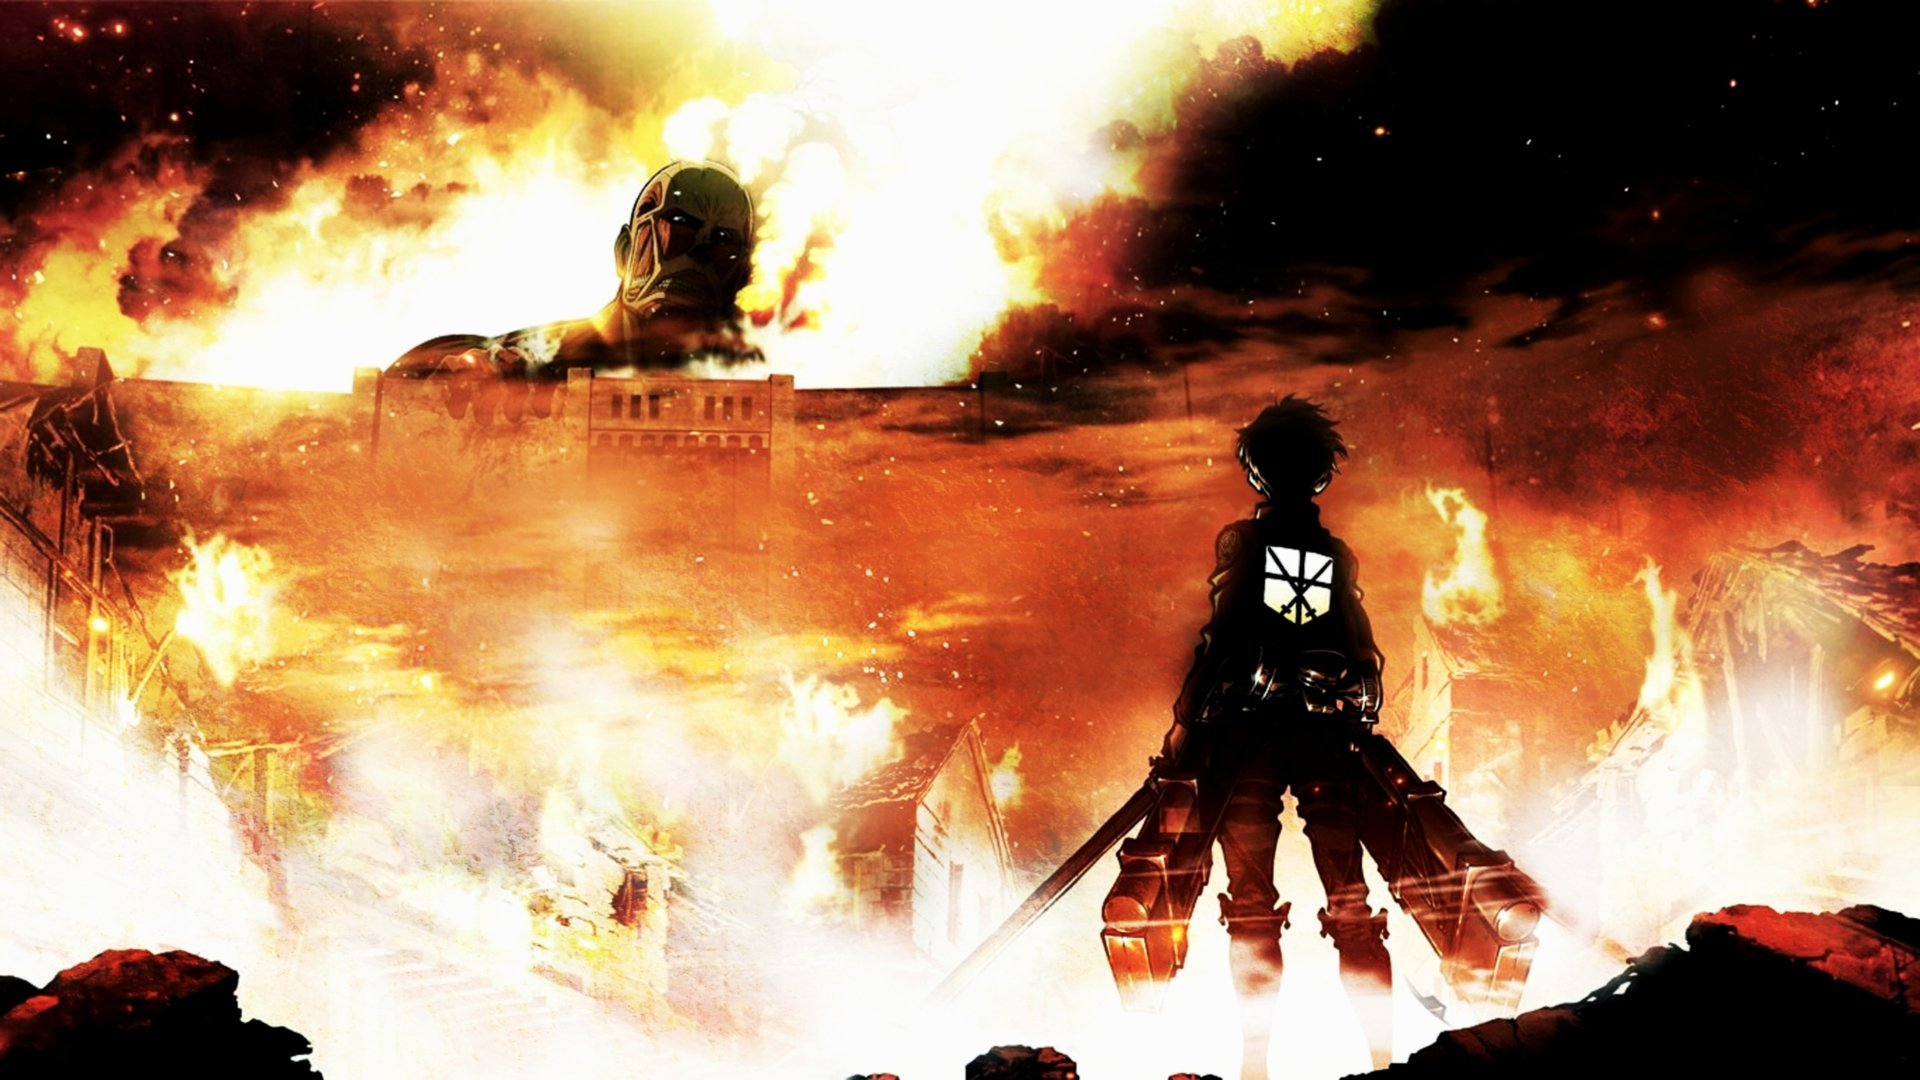 hd wallpaper background id403477 1920x1080 anime attack on titan